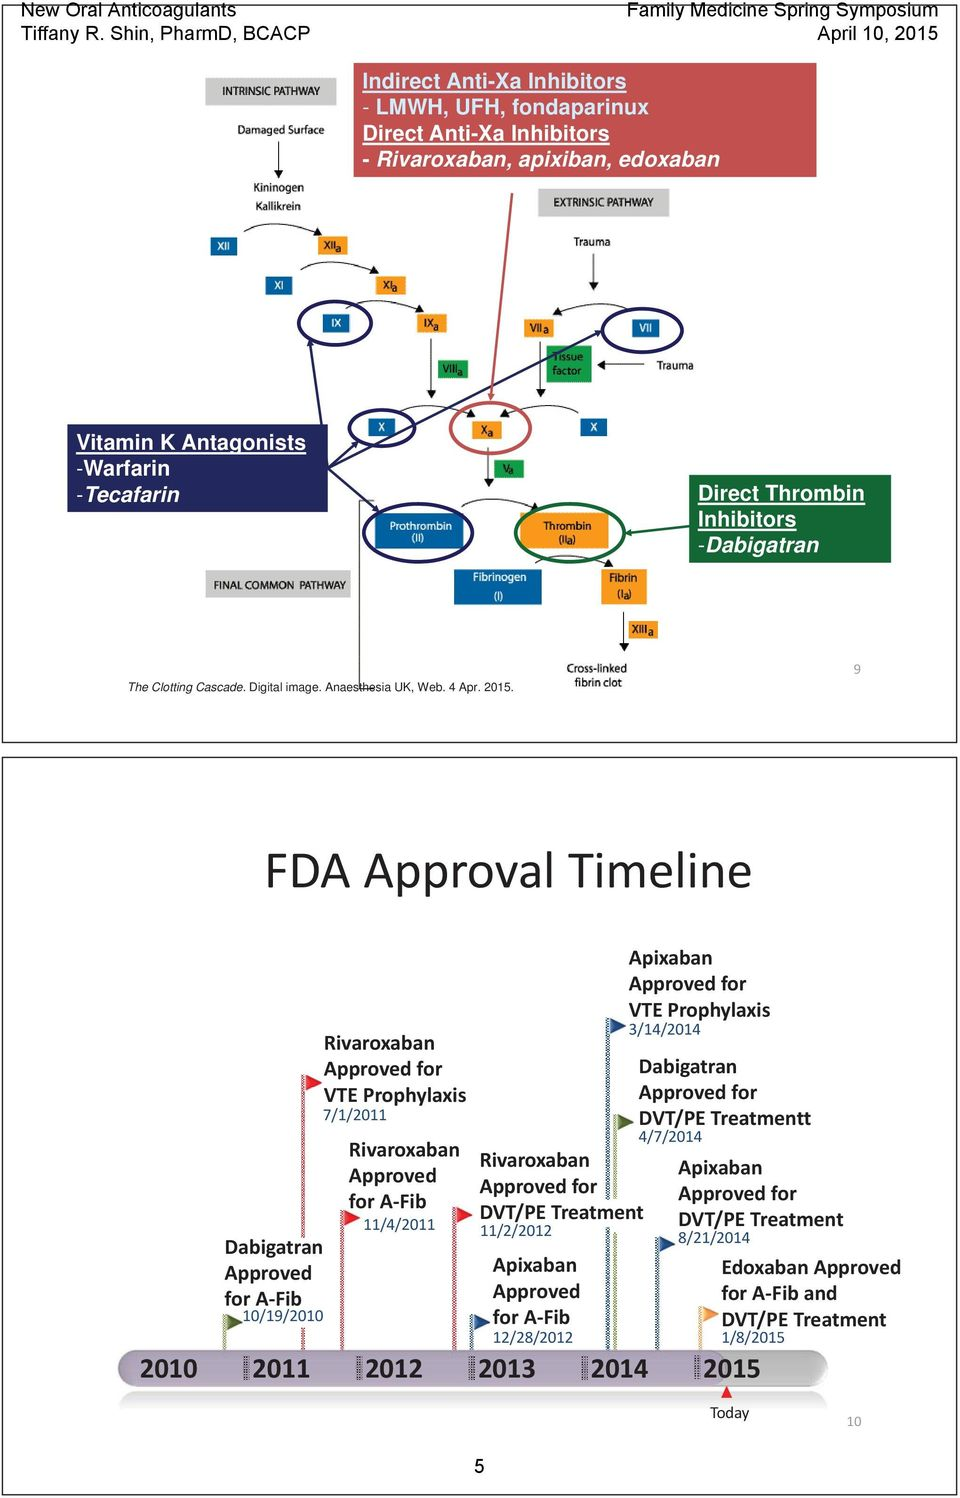 9 FDA Approval Timeline Dabigatran Approved for A Fib 10/19/2010 Rivaroxaban Approved for VTE Prophylaxis 7/1/2011 Rivaroxaban Approved for A Fib 11/4/2011 Rivaroxaban Approved for